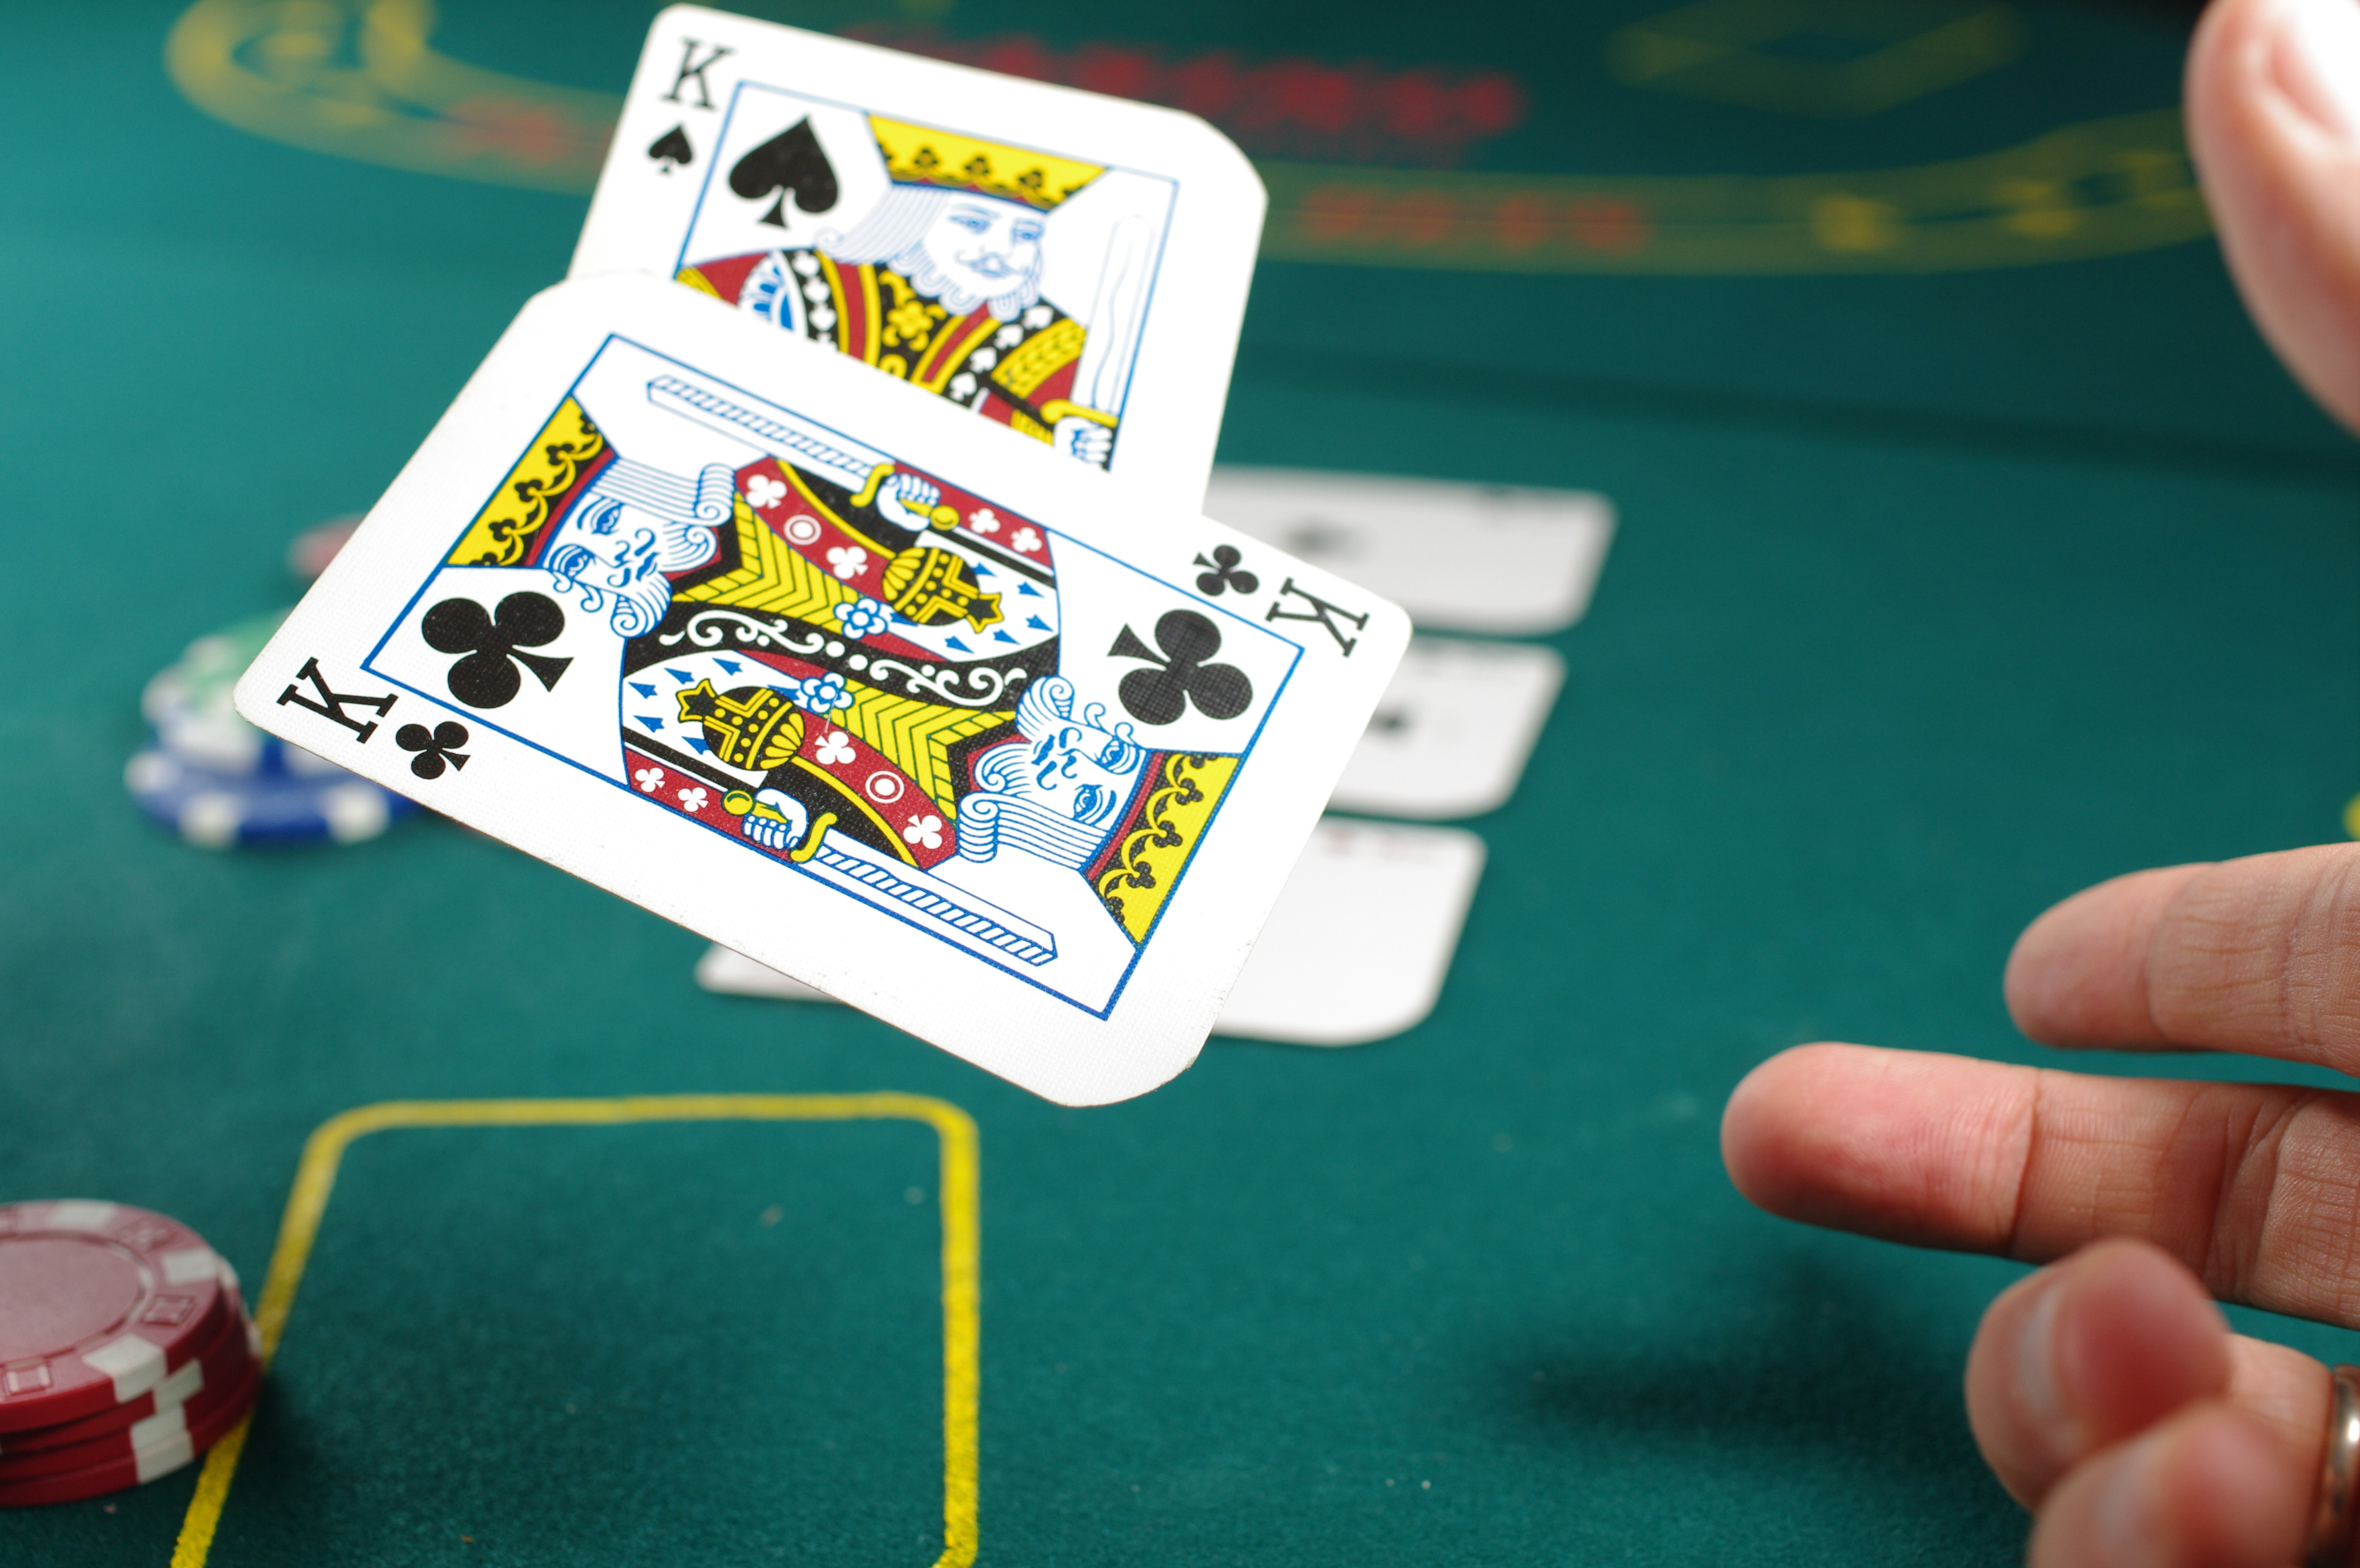 Solitaire 247 poker